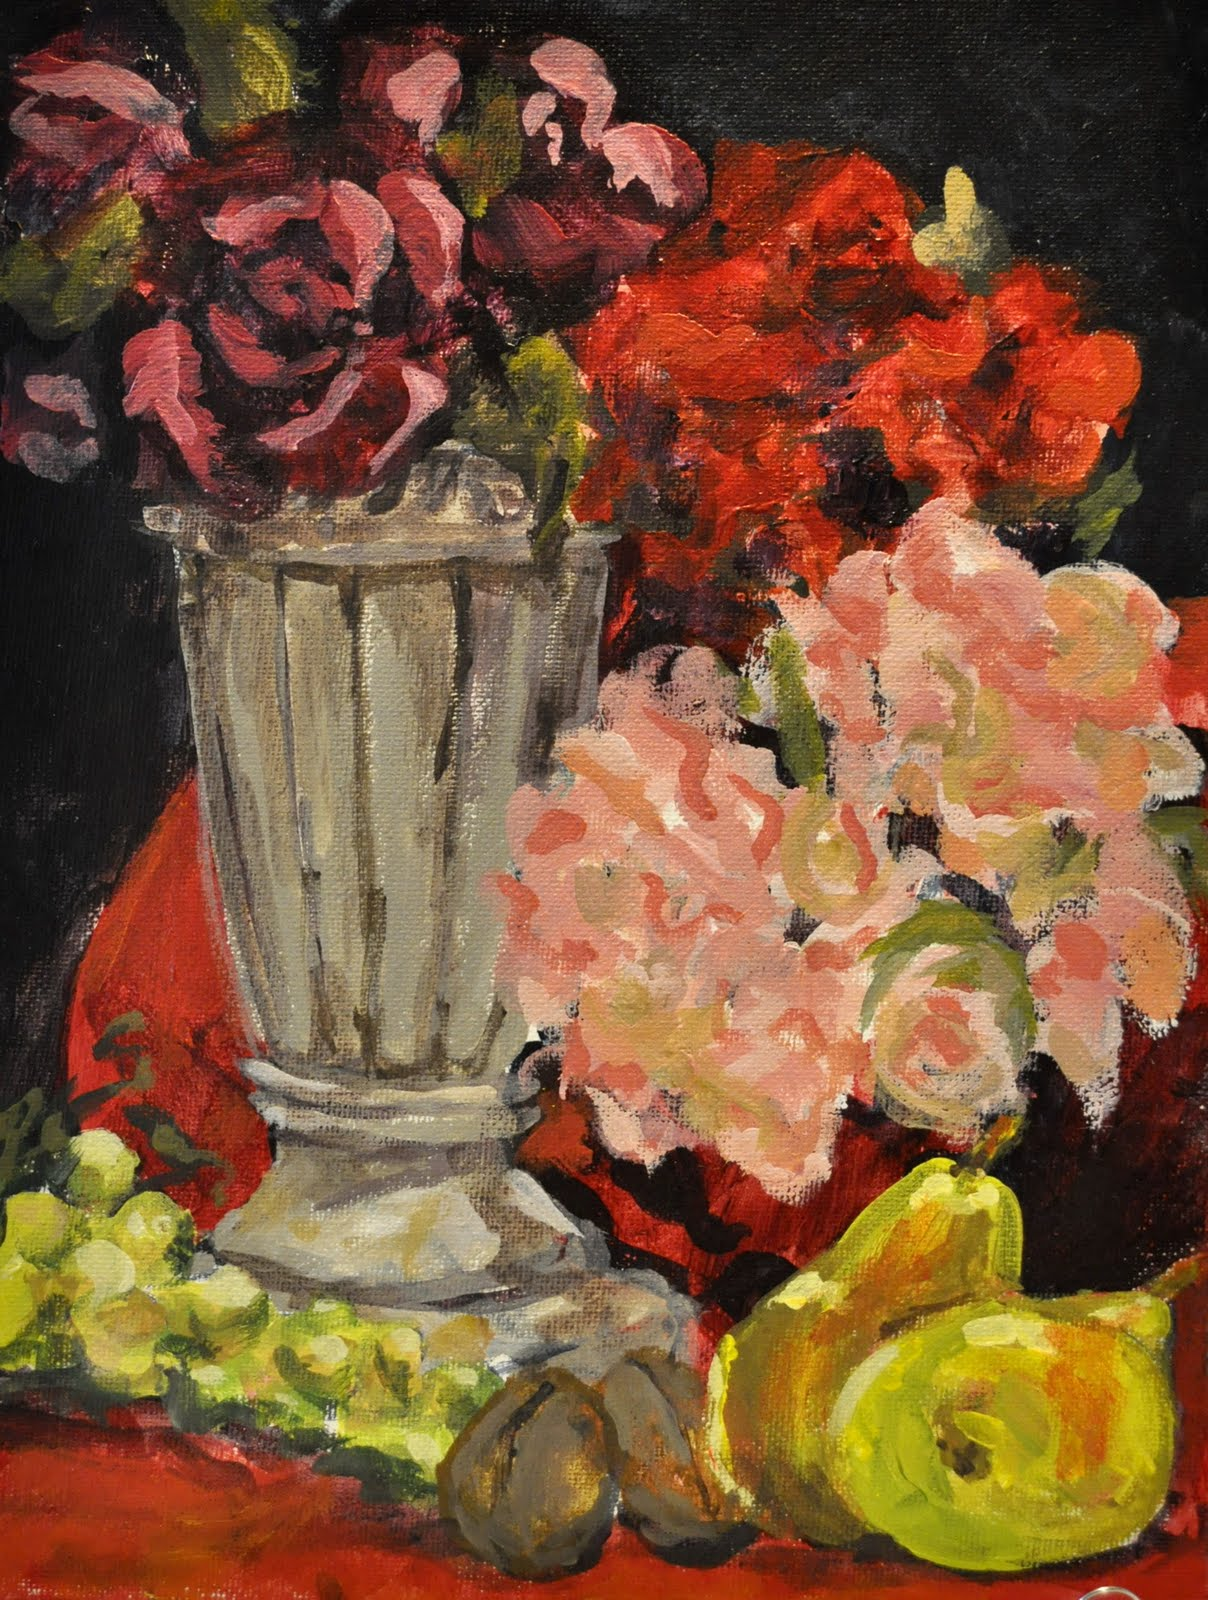 Acrylic Painting Classes For Beginners Near Me